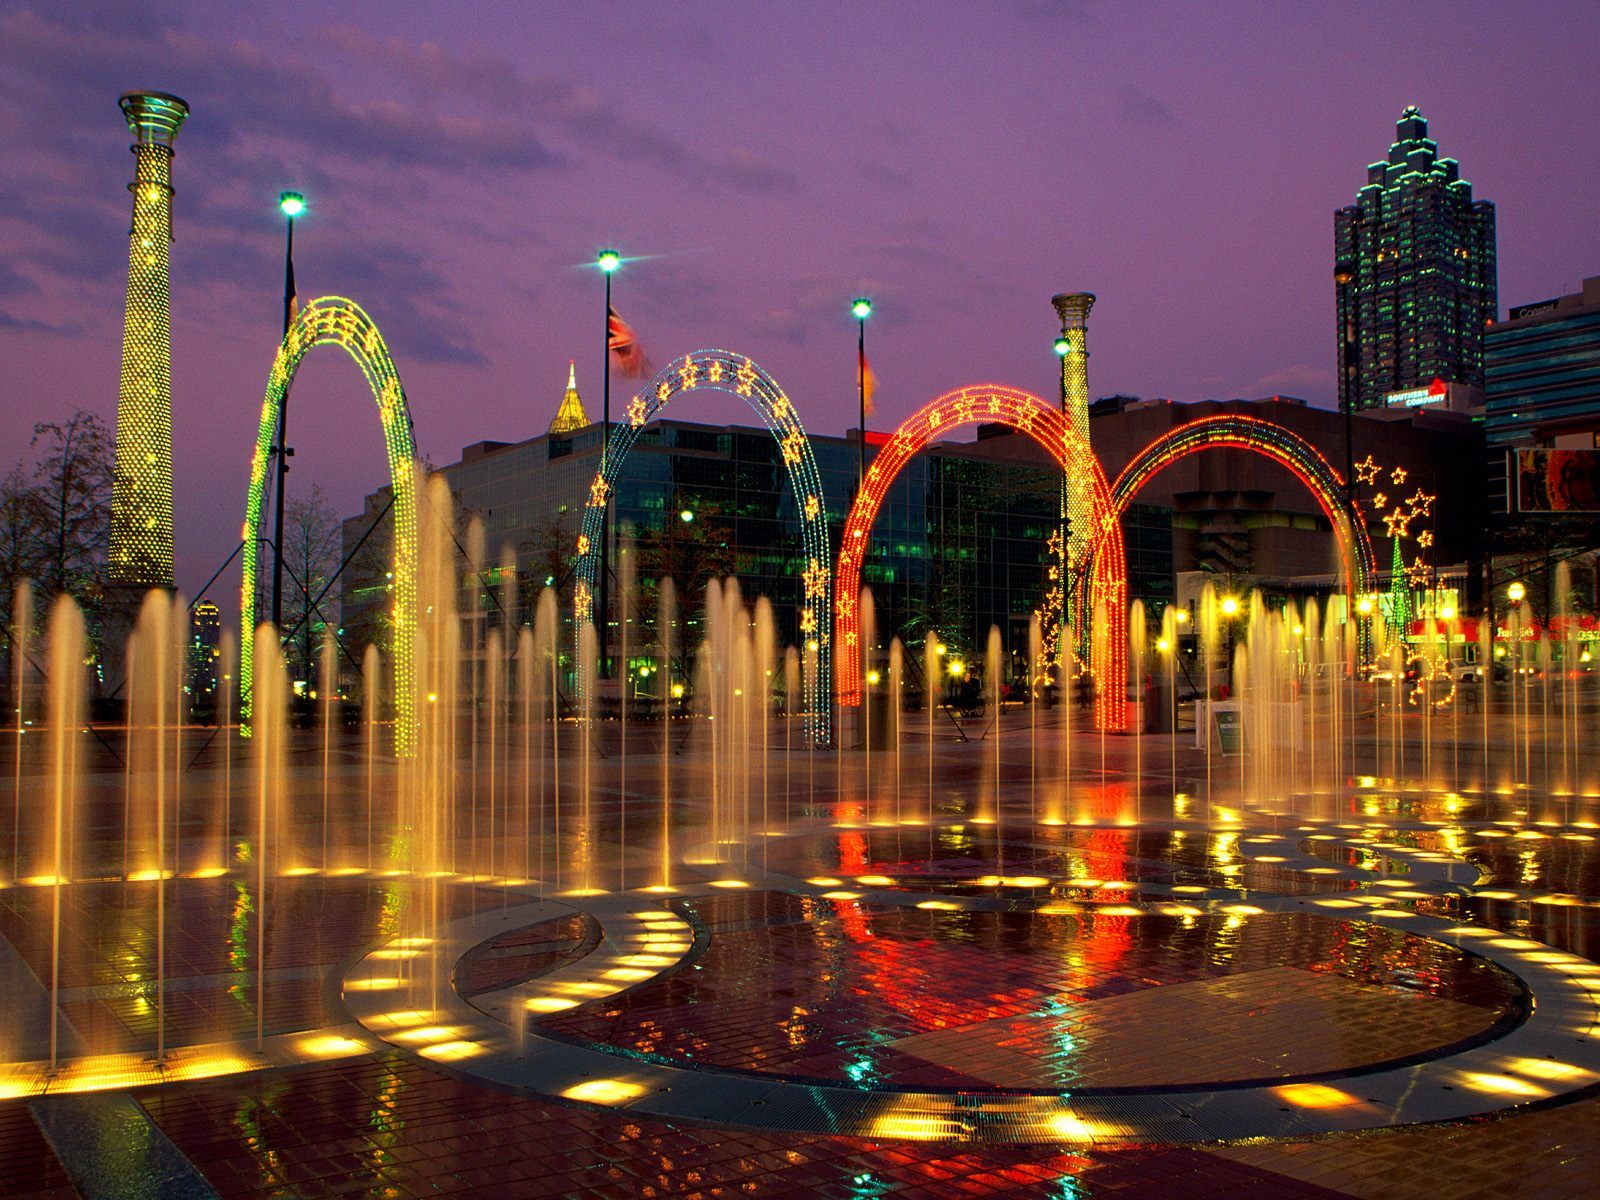 Fountains in Centennial Olympic Park, Atlanta, Georgia | Oh Atlanta ...